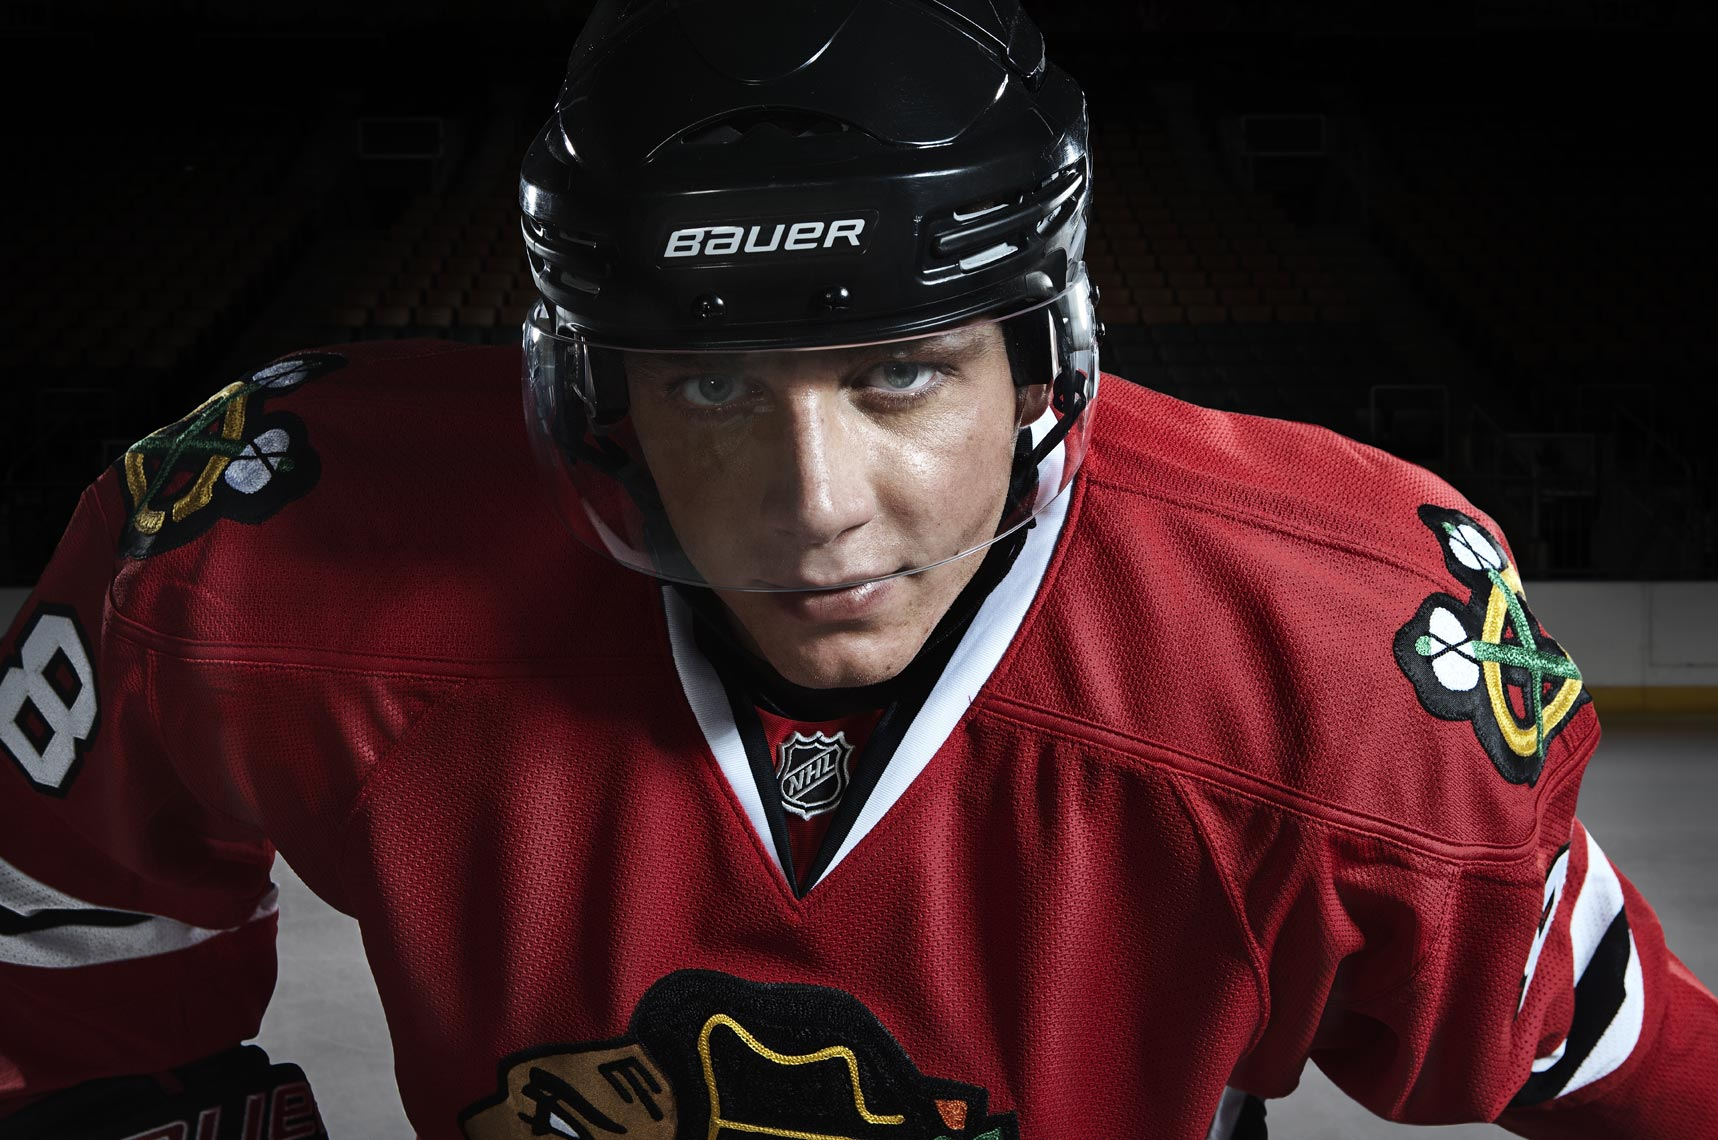 KC Armstrong_Patrick Kane_Chicago Blackhawks_NHL.jpg